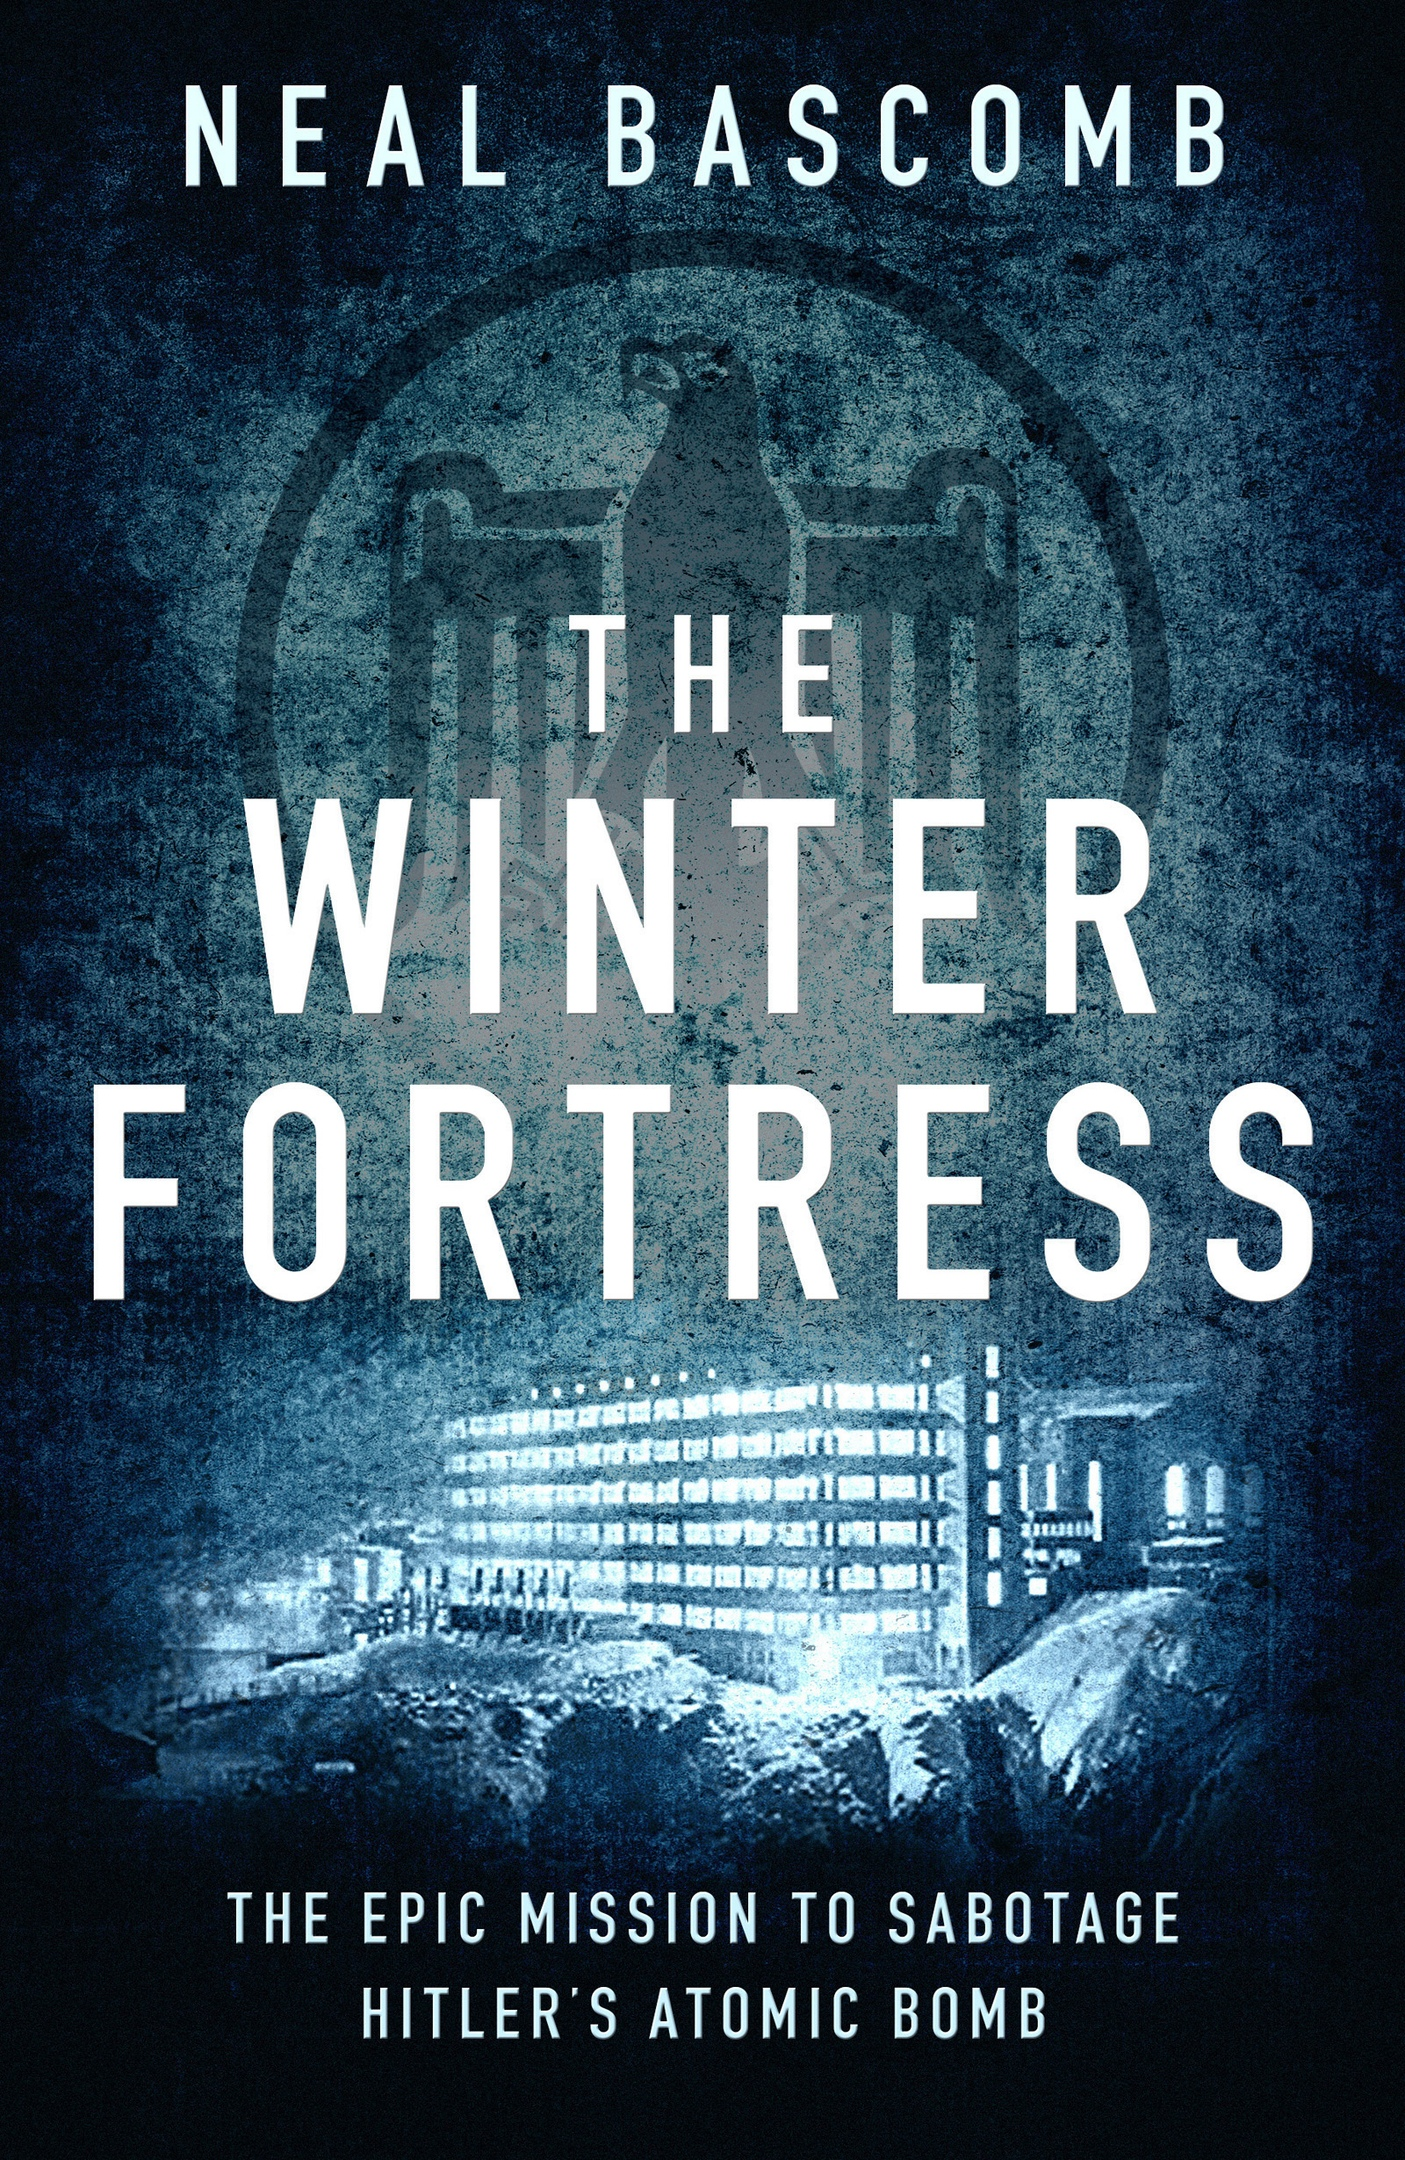 Neal Bascomb – The Winter Fortress Genre: